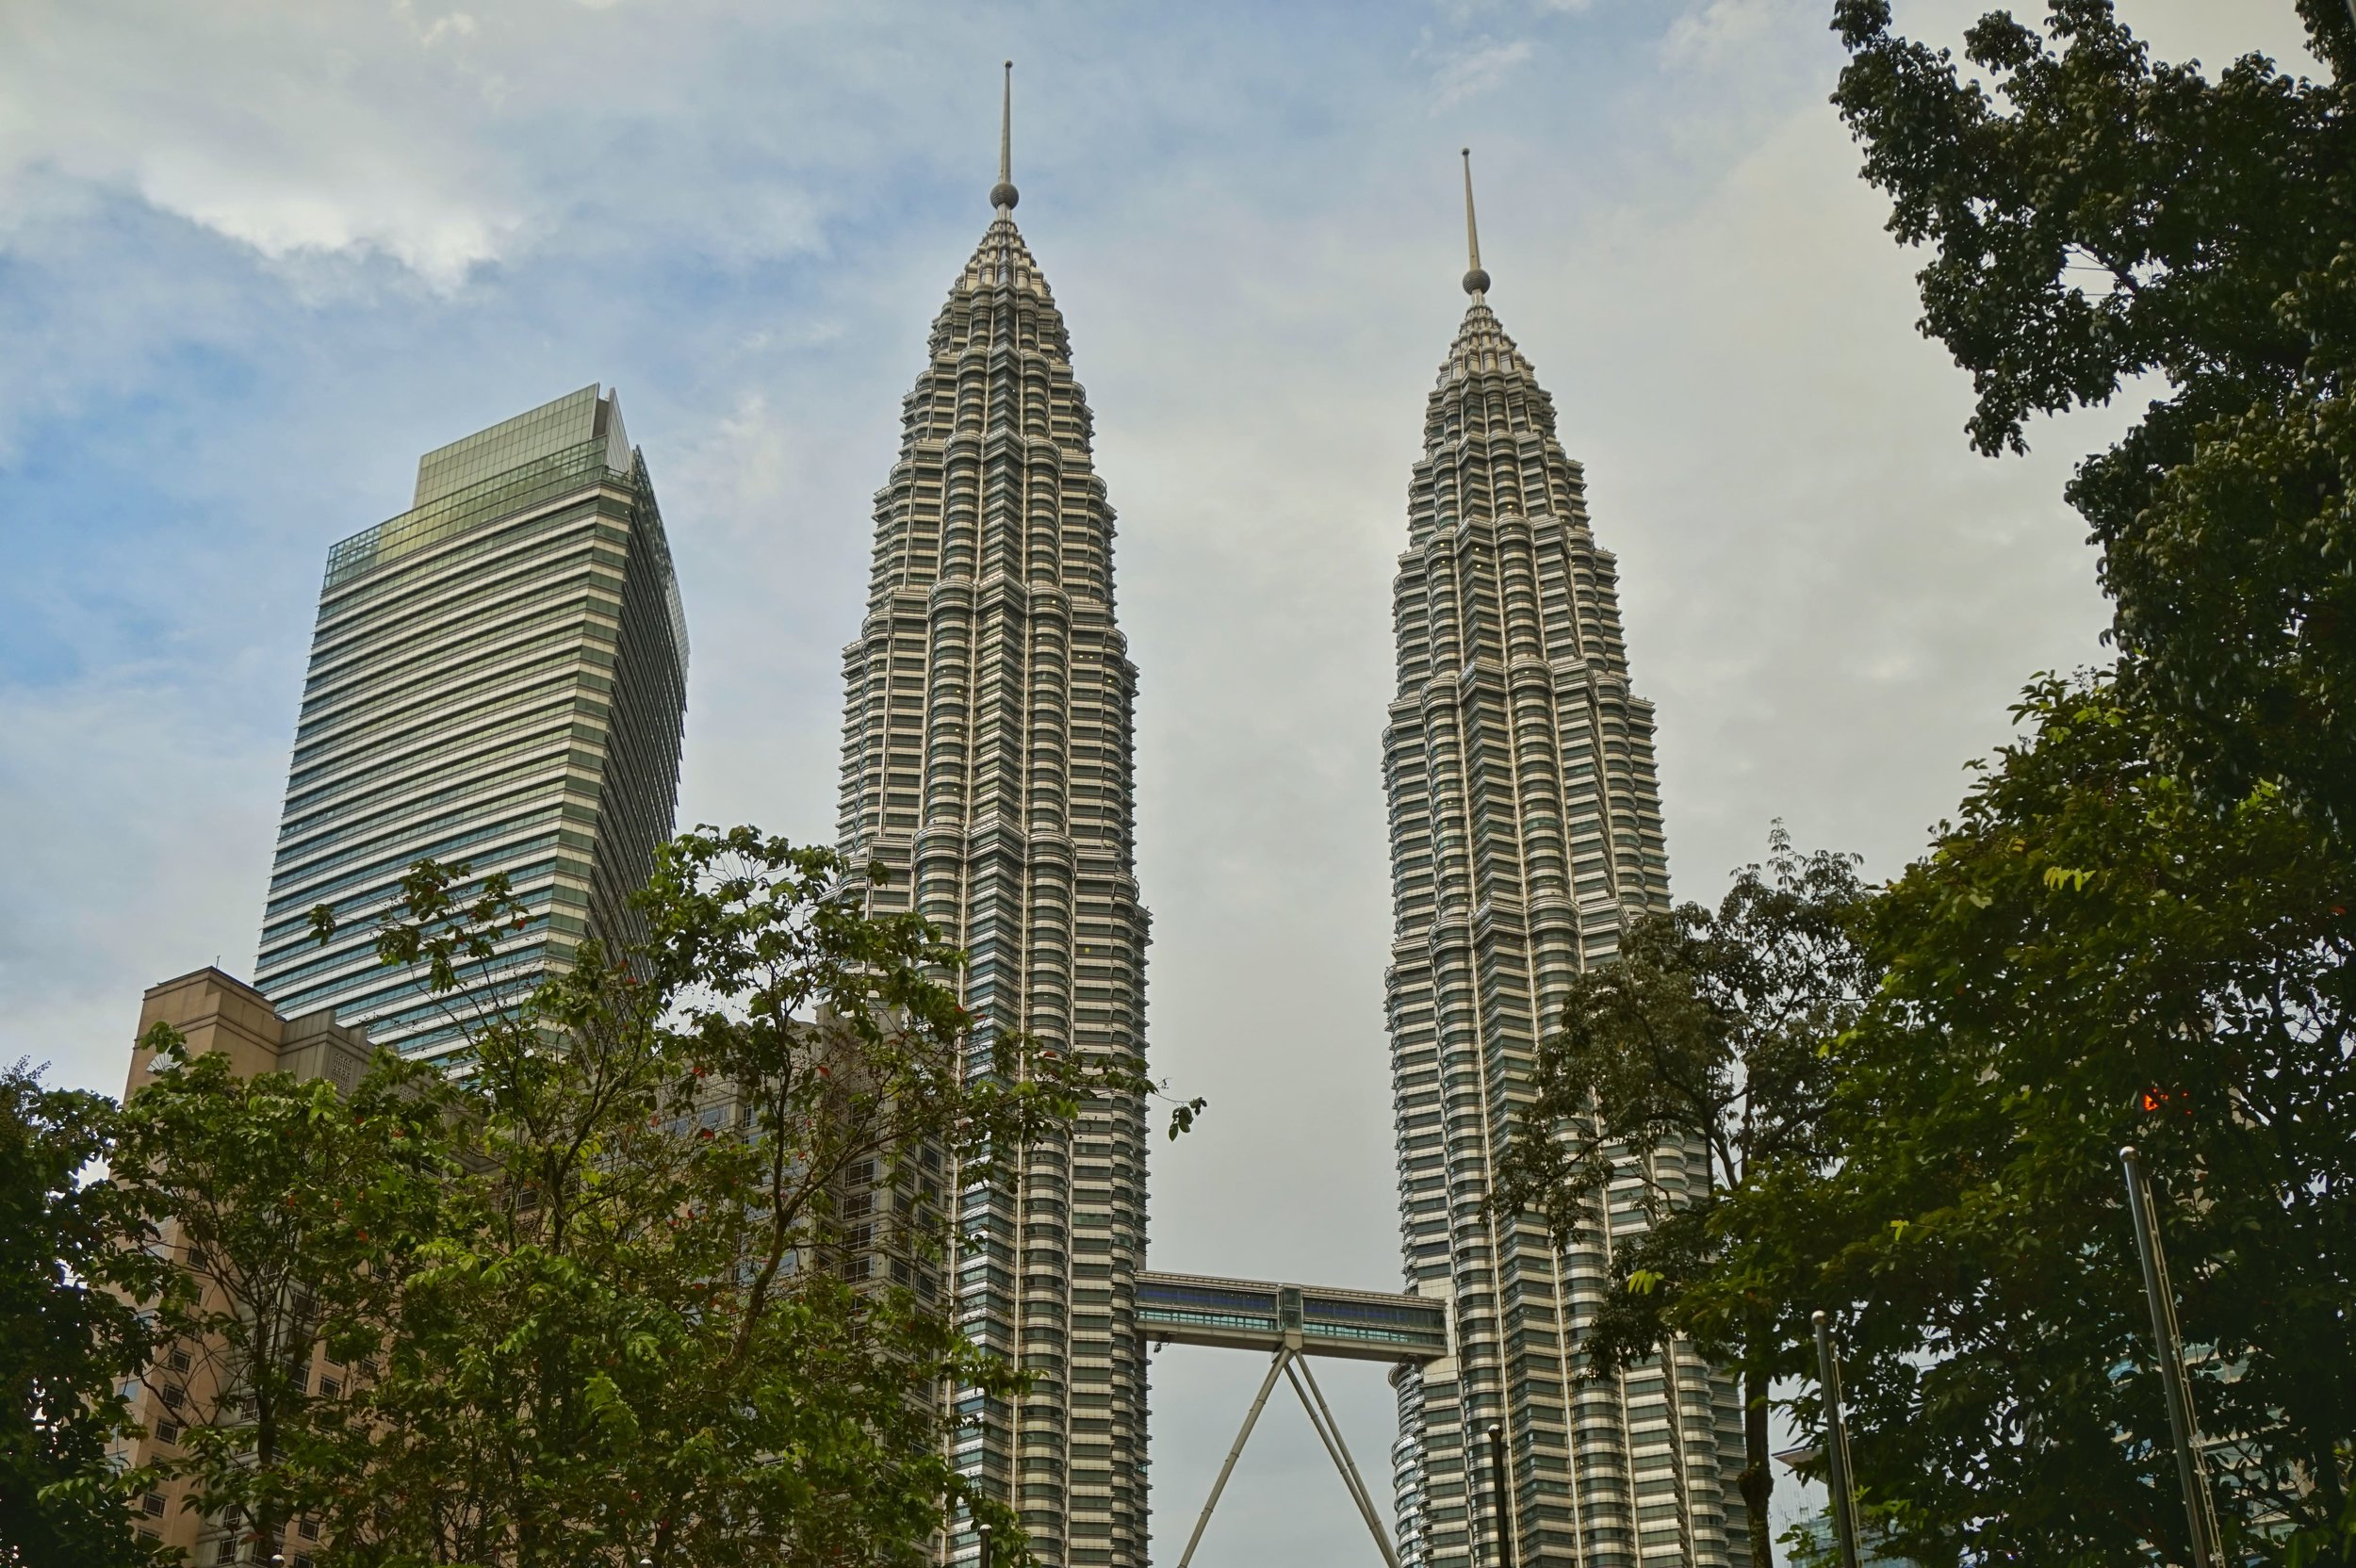 The Petronas Towers are the best thing to do in your 2 day Kuala Lumpur itinerary.